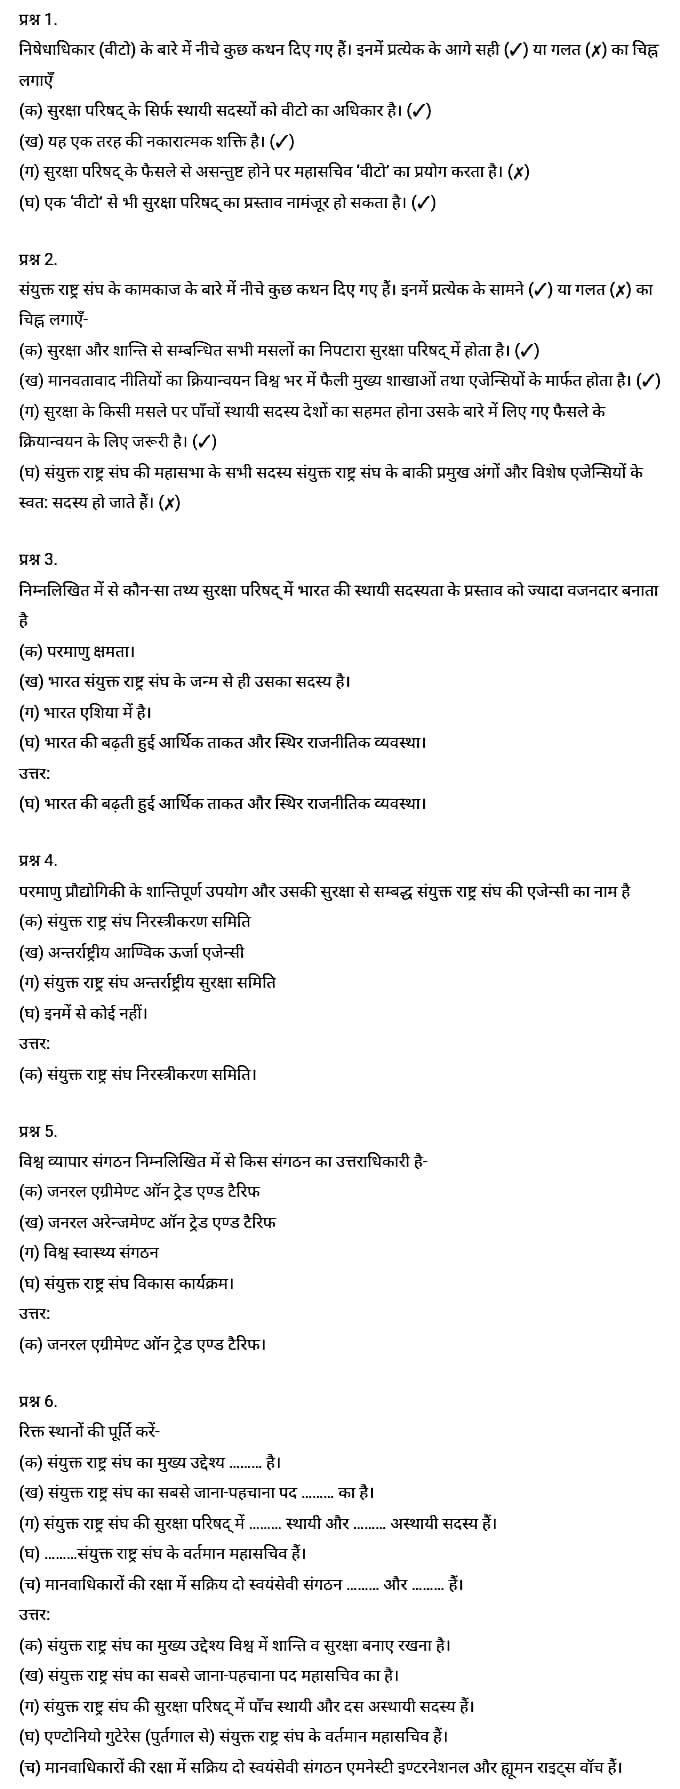 UP Board Solutions for Class 12 Civics Chapter 6 International Organisations (अंतर्राष्ट्रीय संगठन)